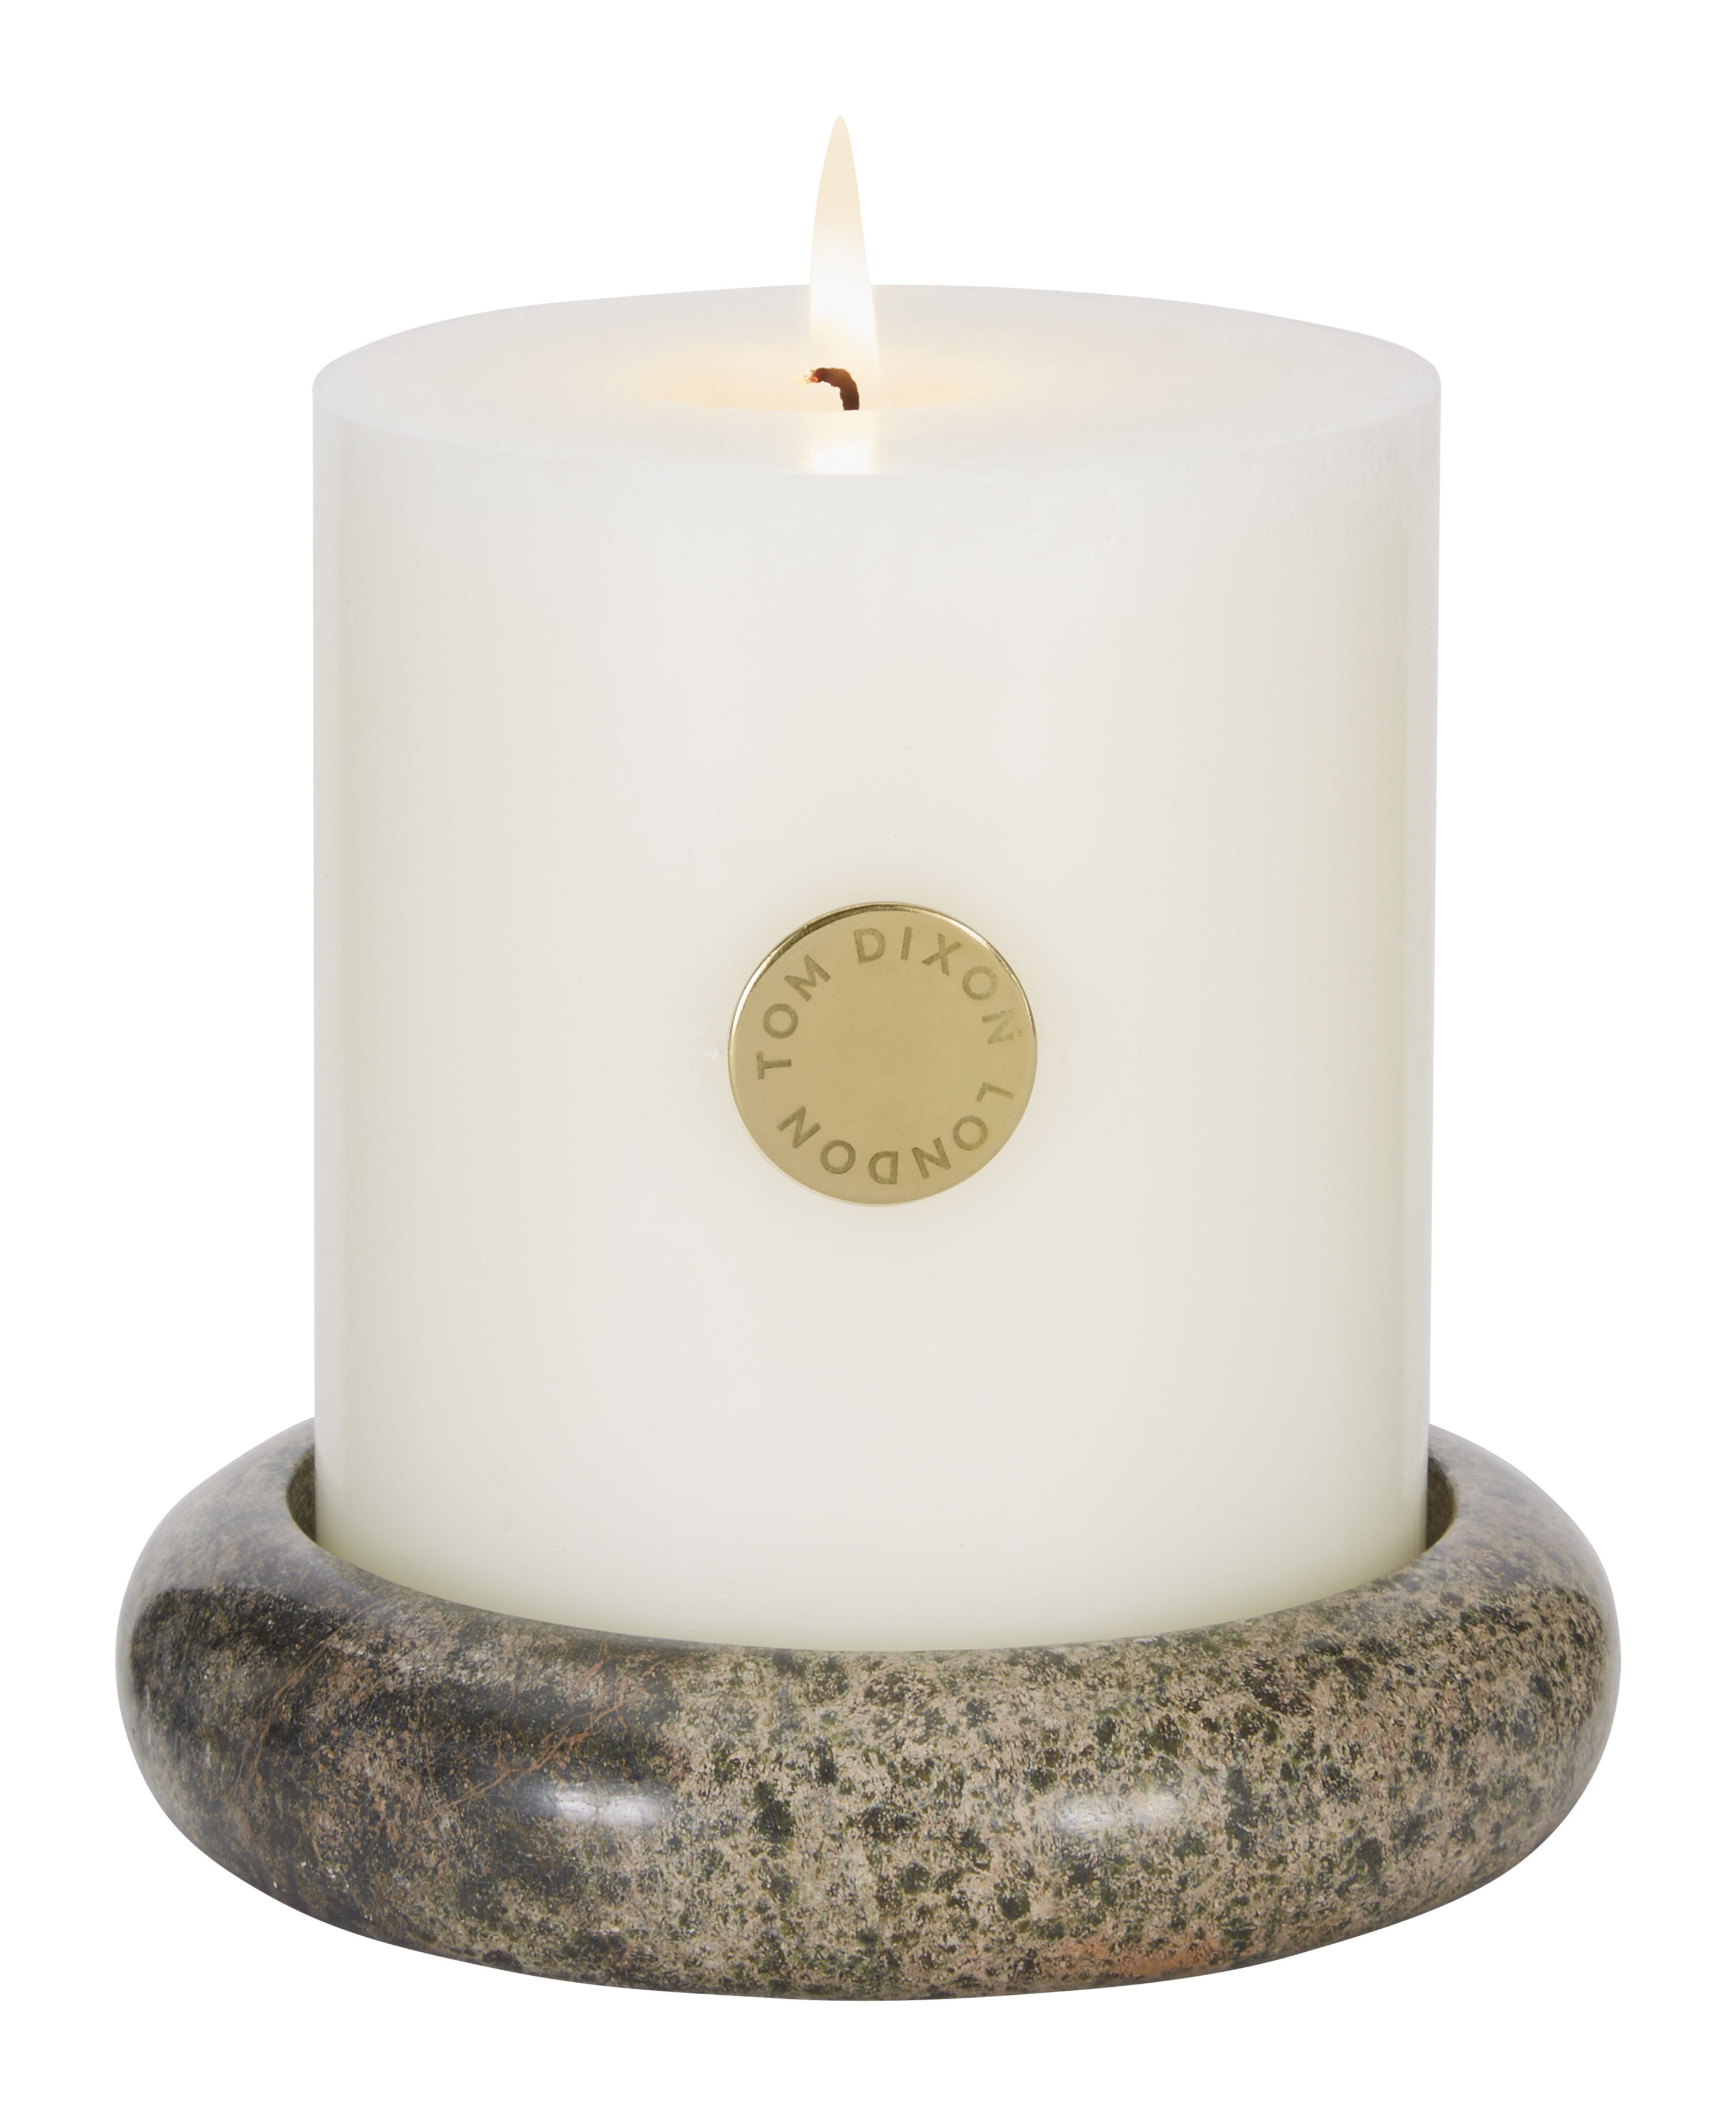 Decoration - Candles & Candle Holders - Stone Pillar Perfumed candle - Candle + marble holder by Tom Dixon - Green marble - Forest Green marble, Wax